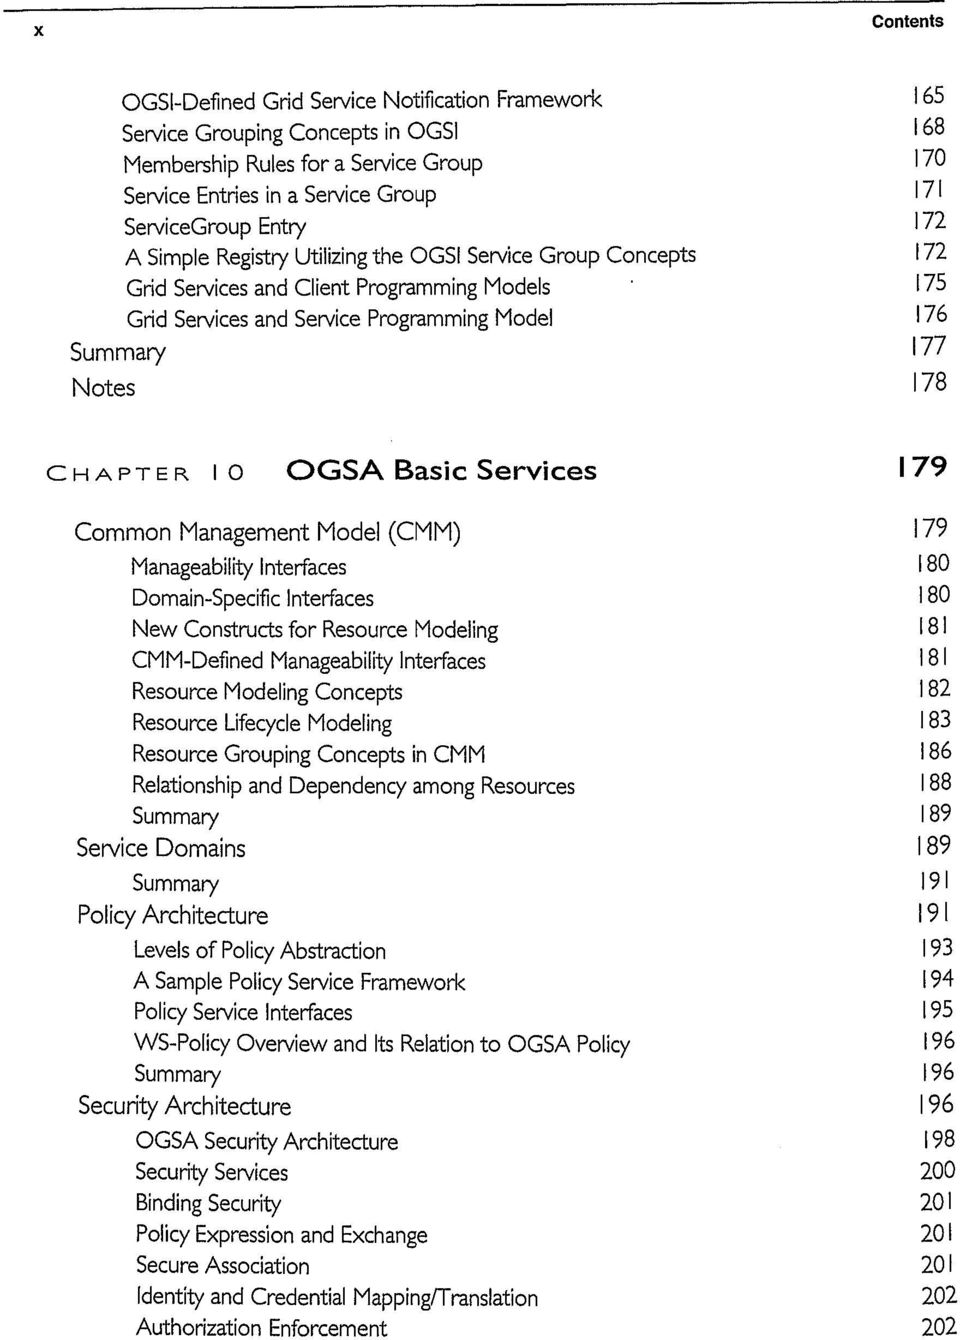 1 0 OGSA Basic Services 179 Common Management Model (CMM) 179 Manageability Interfaces 180 Domain-Specific Interfaces 180 New Constructs for Resource Modeling 181 CMM-Defined Manageability Interfaces